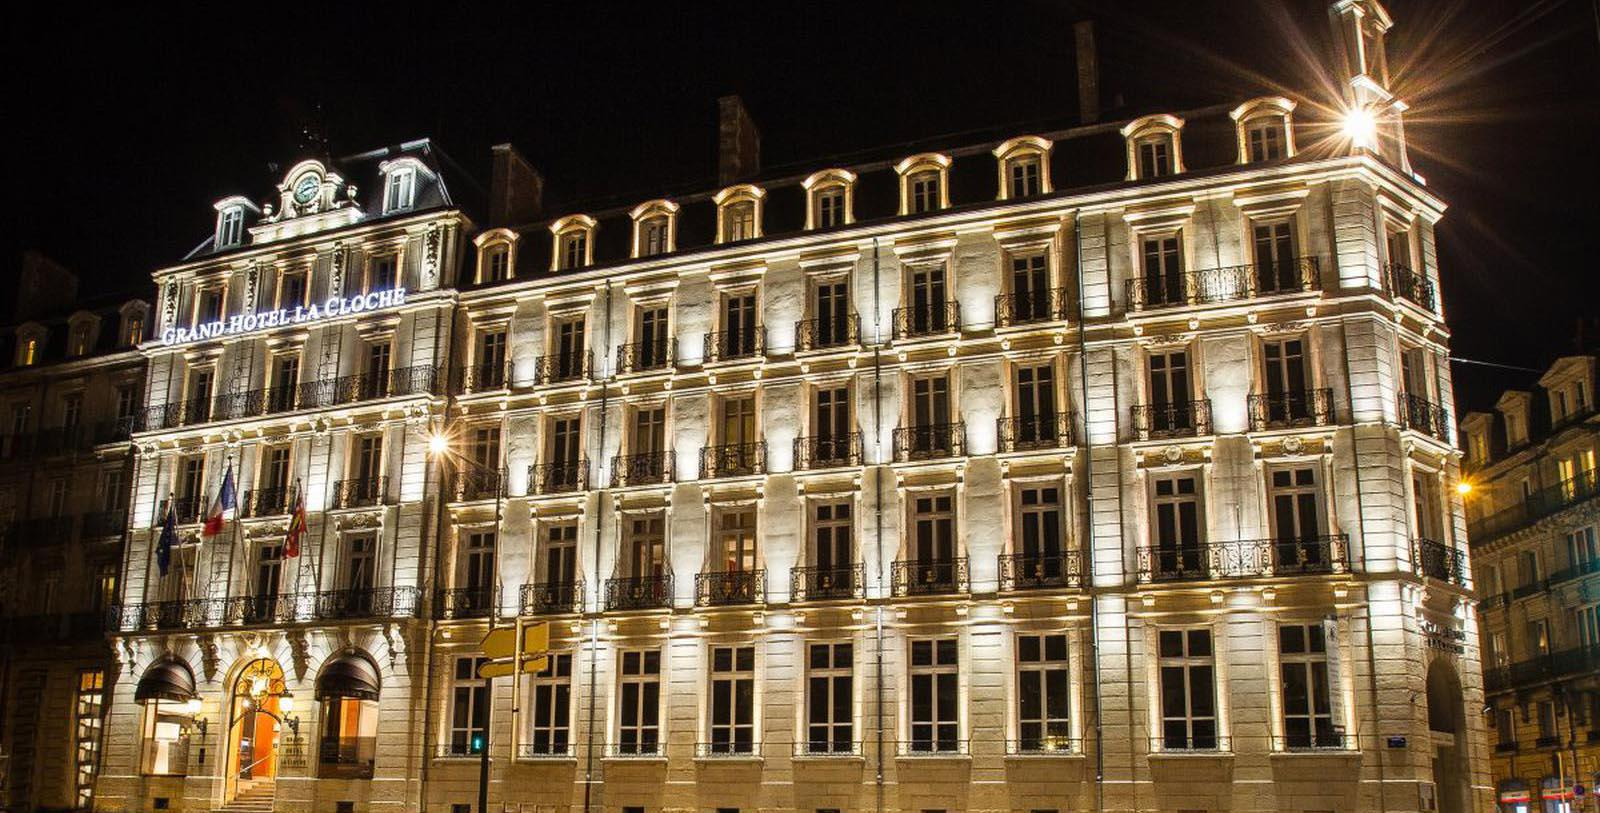 Image of Exterior at Night, Grand Hôtel La Cloche Dijon - MGallery by Sofitel, Dijon, France, 1884, Member of Historic Hotels Worldwide, Special Offers, Discounted Rates, Families, Romantic Escape, Honeymoons, Anniversaries, Reunions